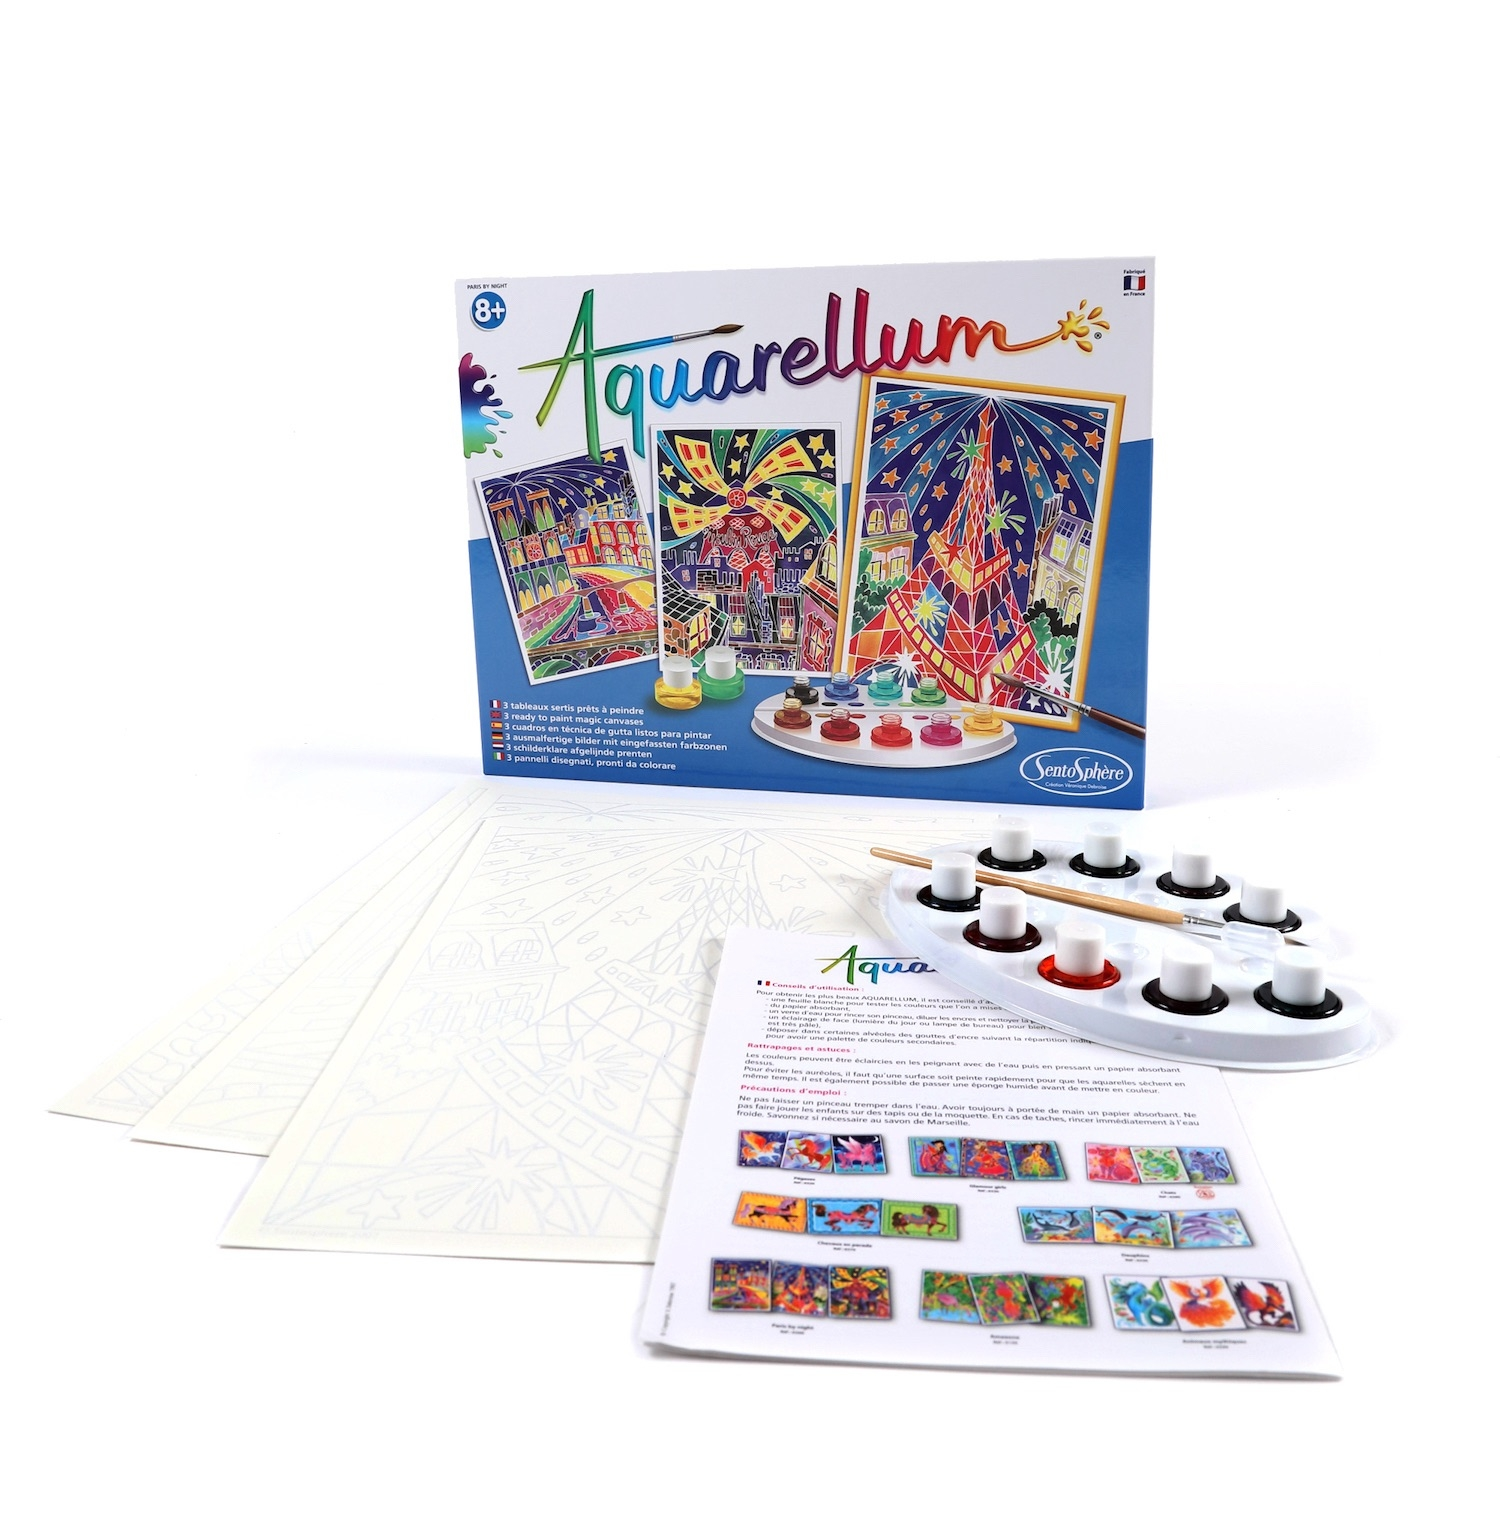 Alternate Aquarellum Parisian Painting Kit image 0